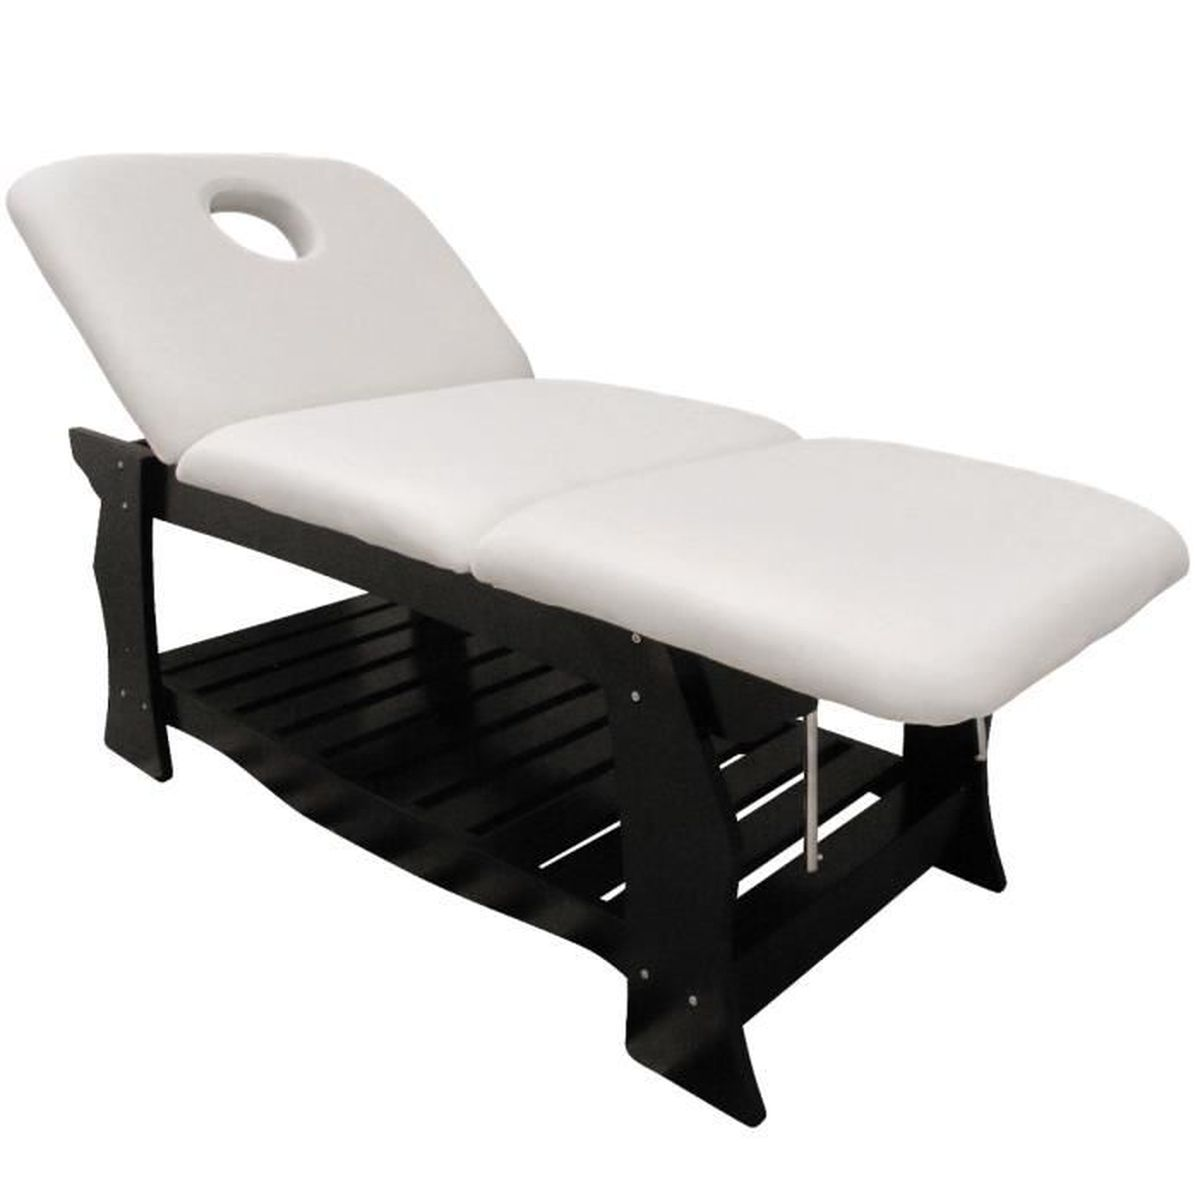 table de massage professionnelle fixe. Black Bedroom Furniture Sets. Home Design Ideas